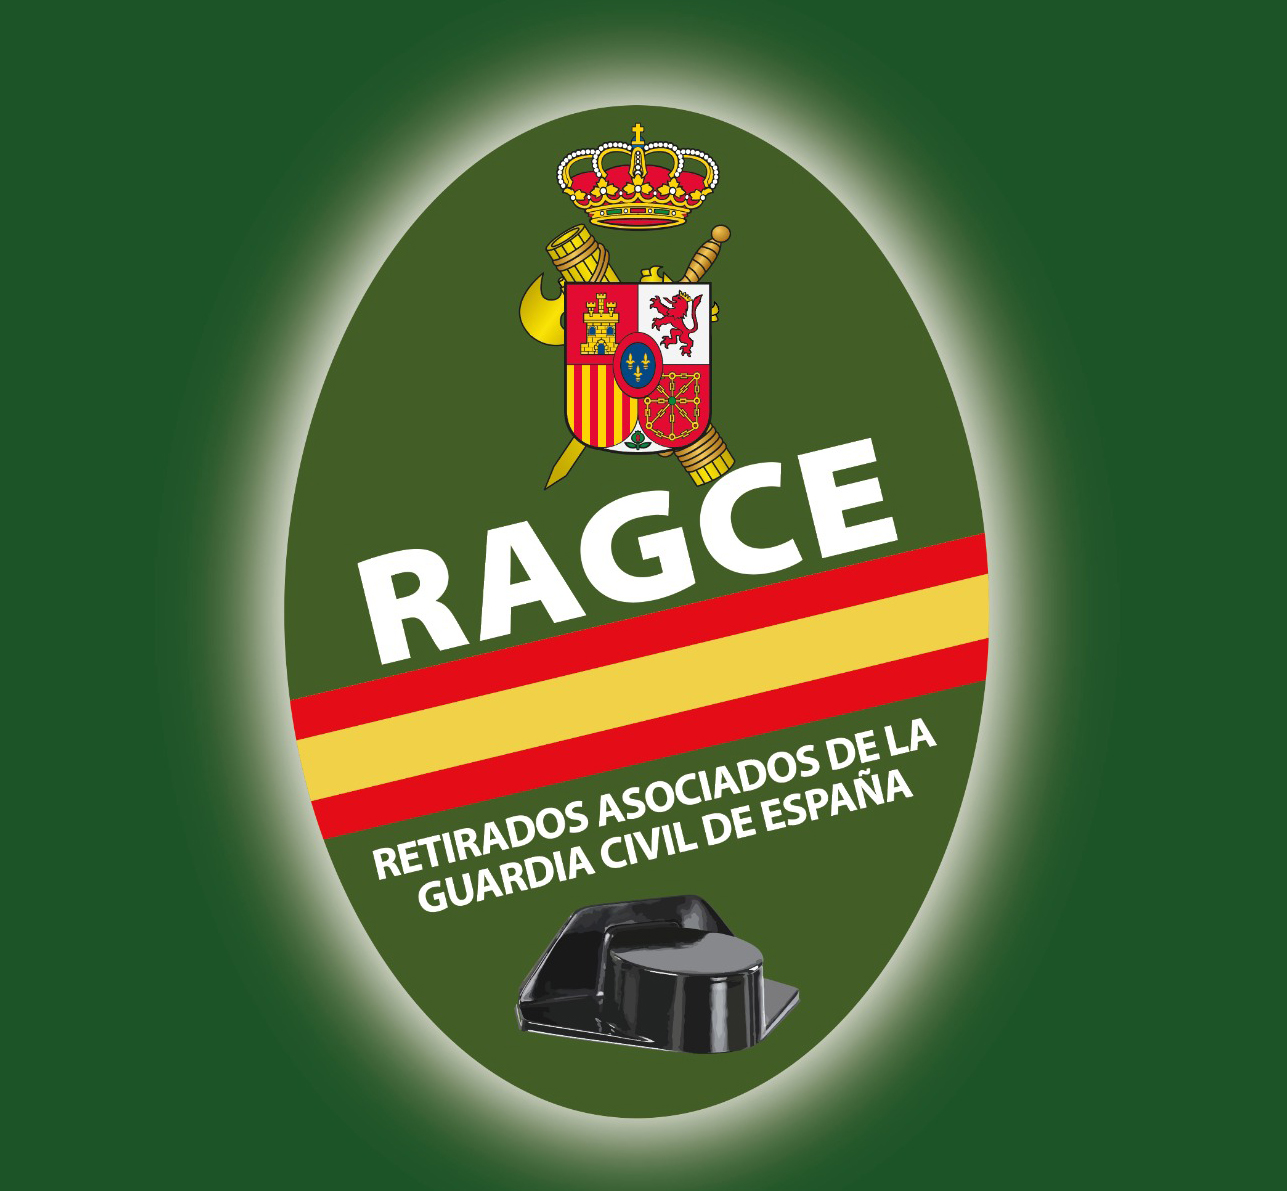 RAGCE - Veteranos de la Guardia Civil